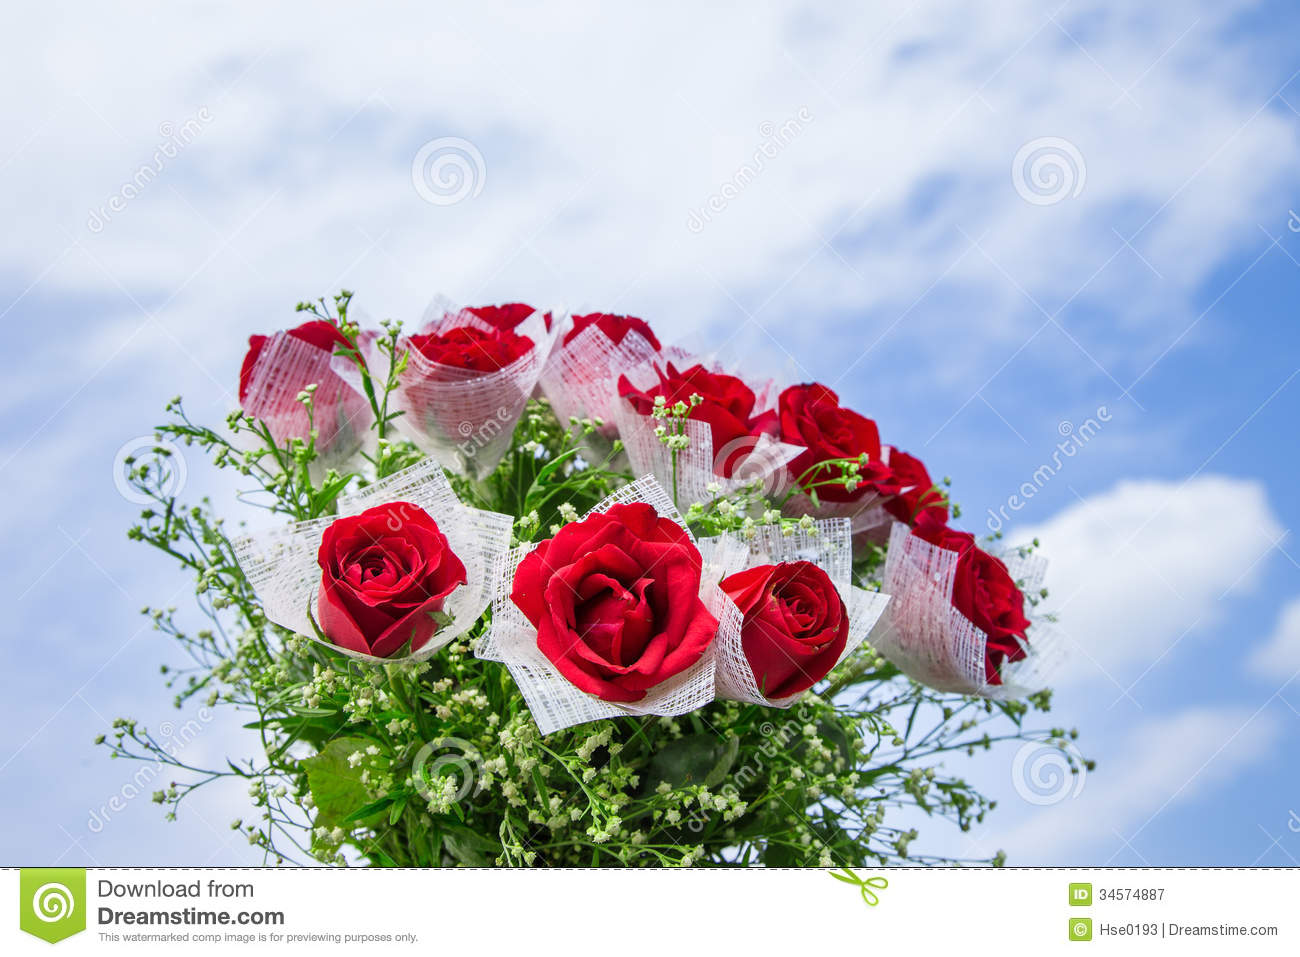 a bunch of red rose flowers stock image - image of rose, bunch: 34574887